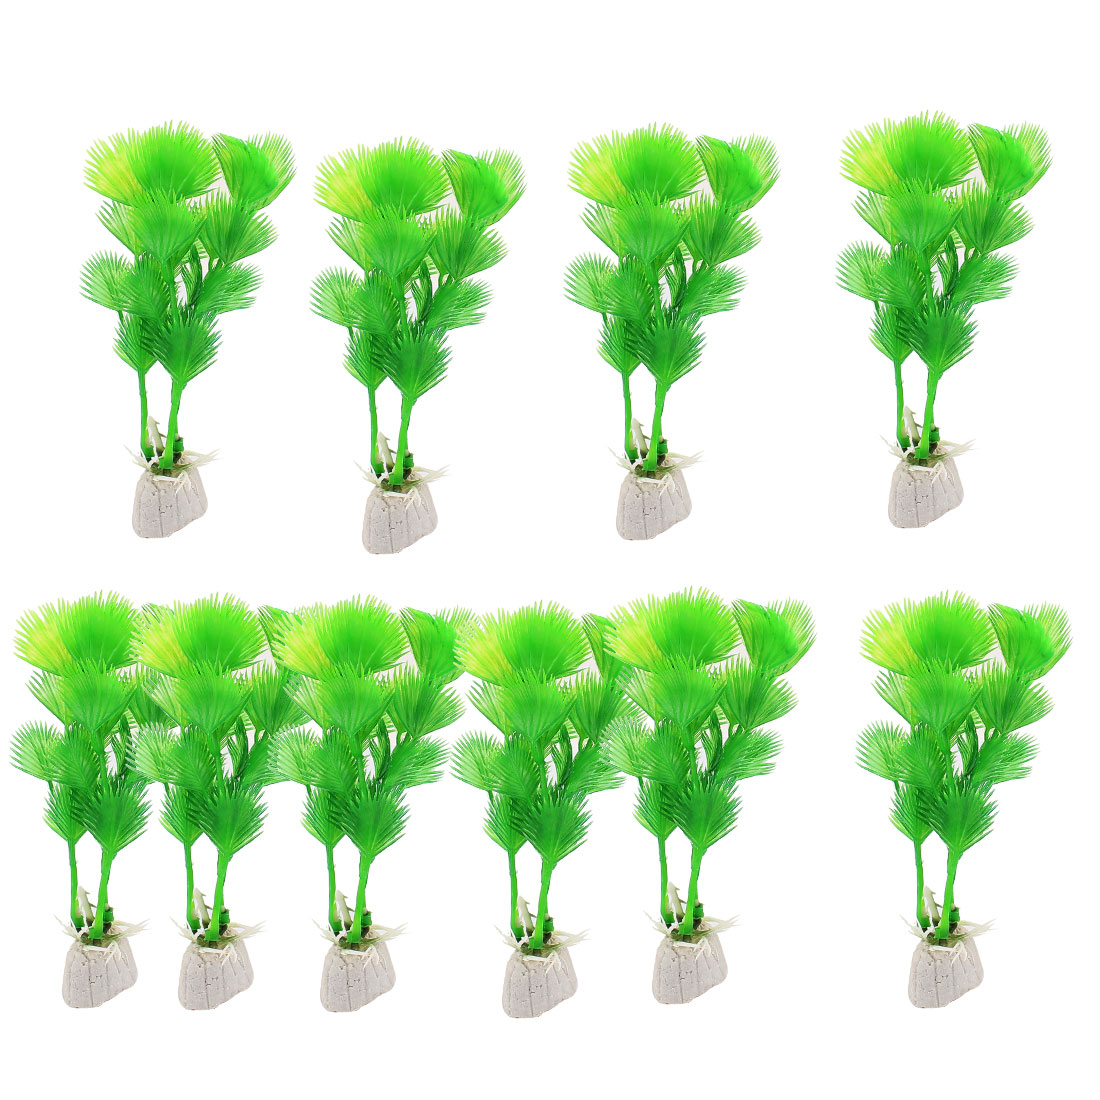 Plastic Underwater Aquatic Plant Fish Tank Aquarium Decor Green 10PCS